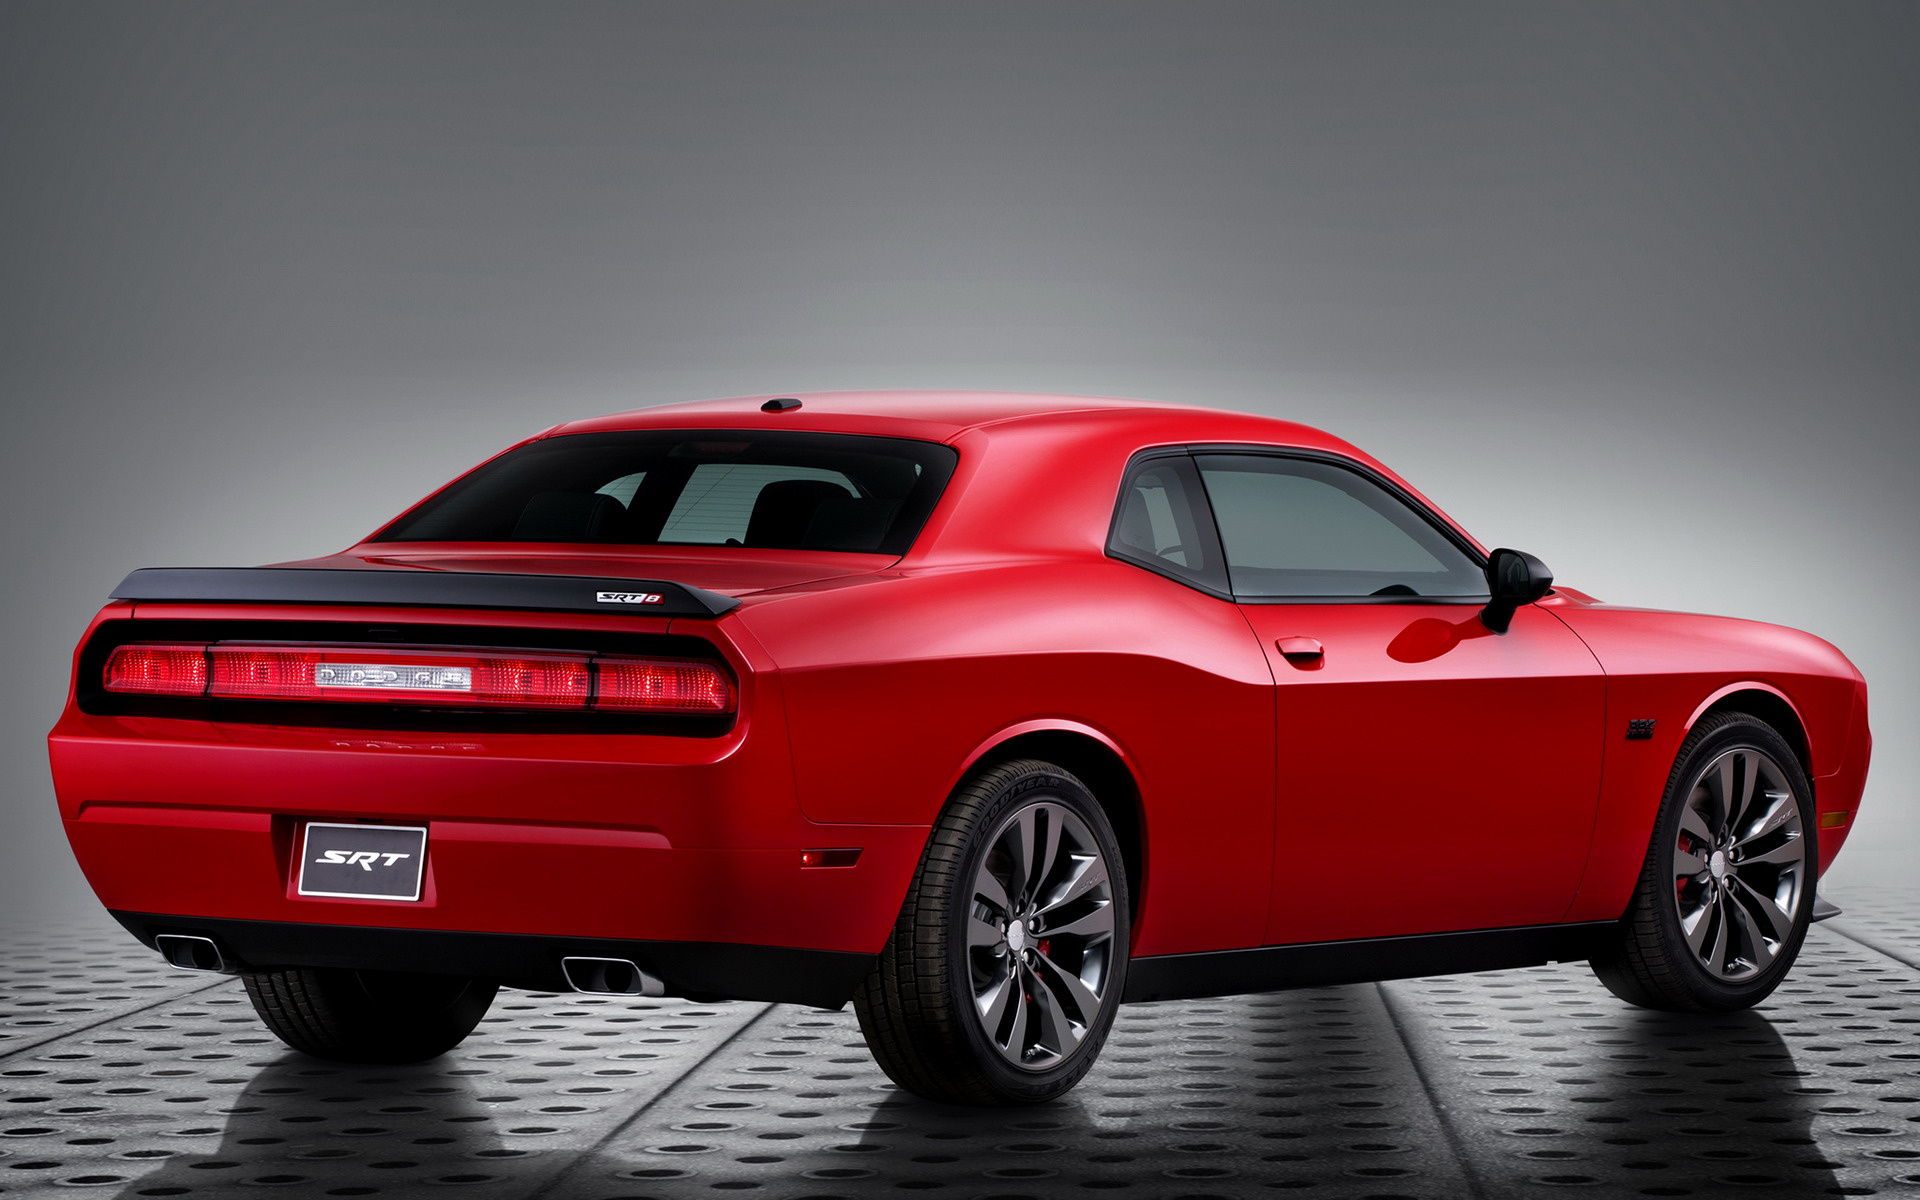 Dodge Challenger SRT8 Satin Vapor 2014 Wallpapers and HD Images 1920x1200